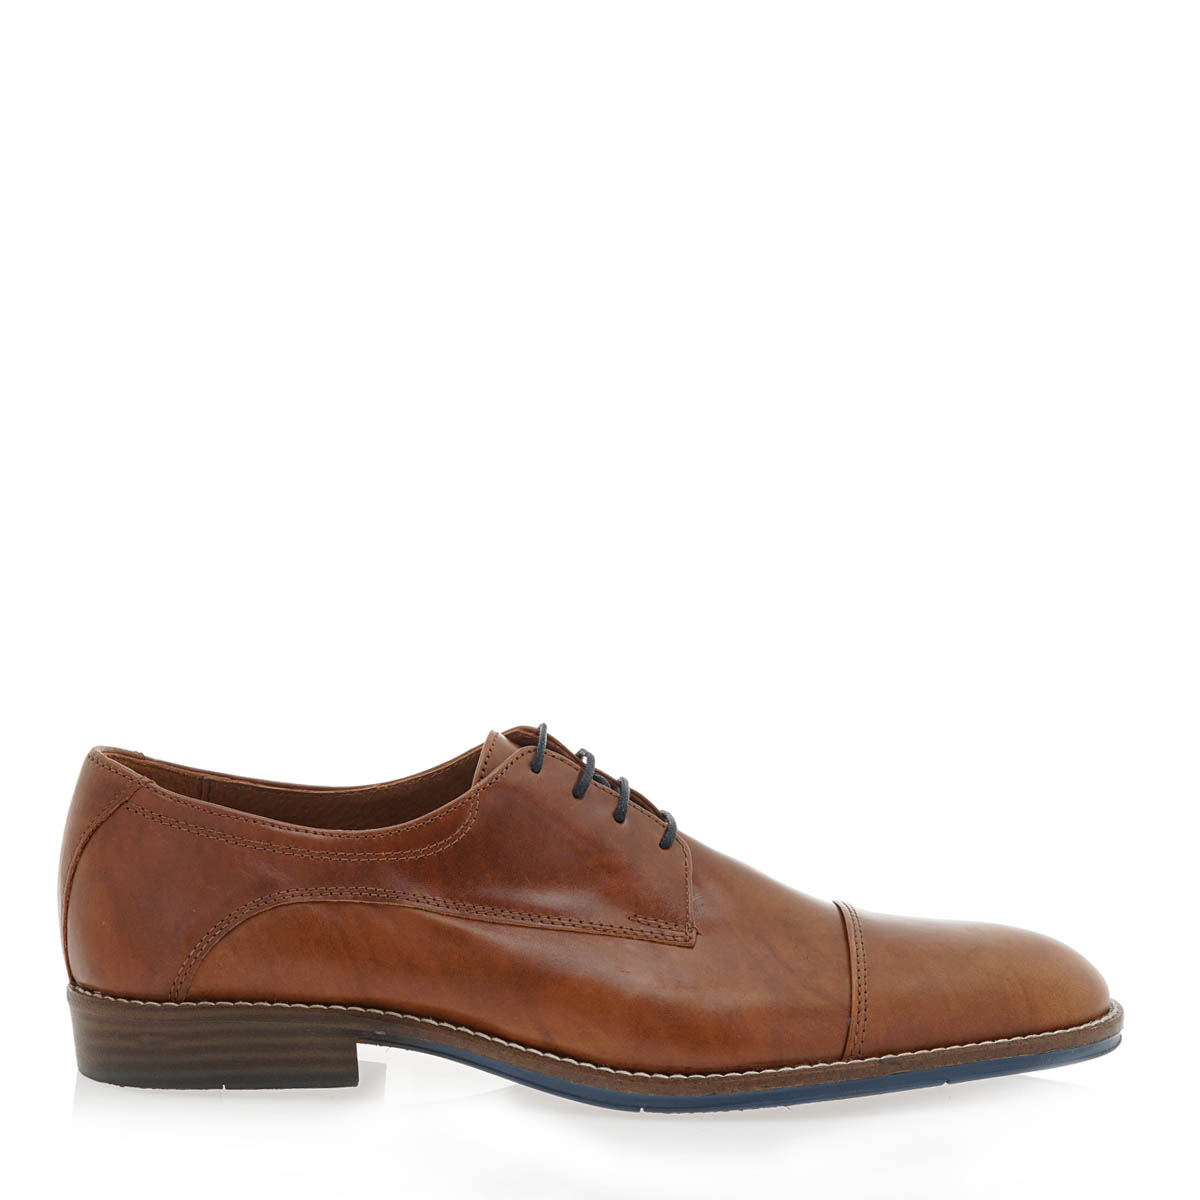 LACE-UP SHOES σχέδιο: I579V0031 outlet   ανδρικα   lace up shoes